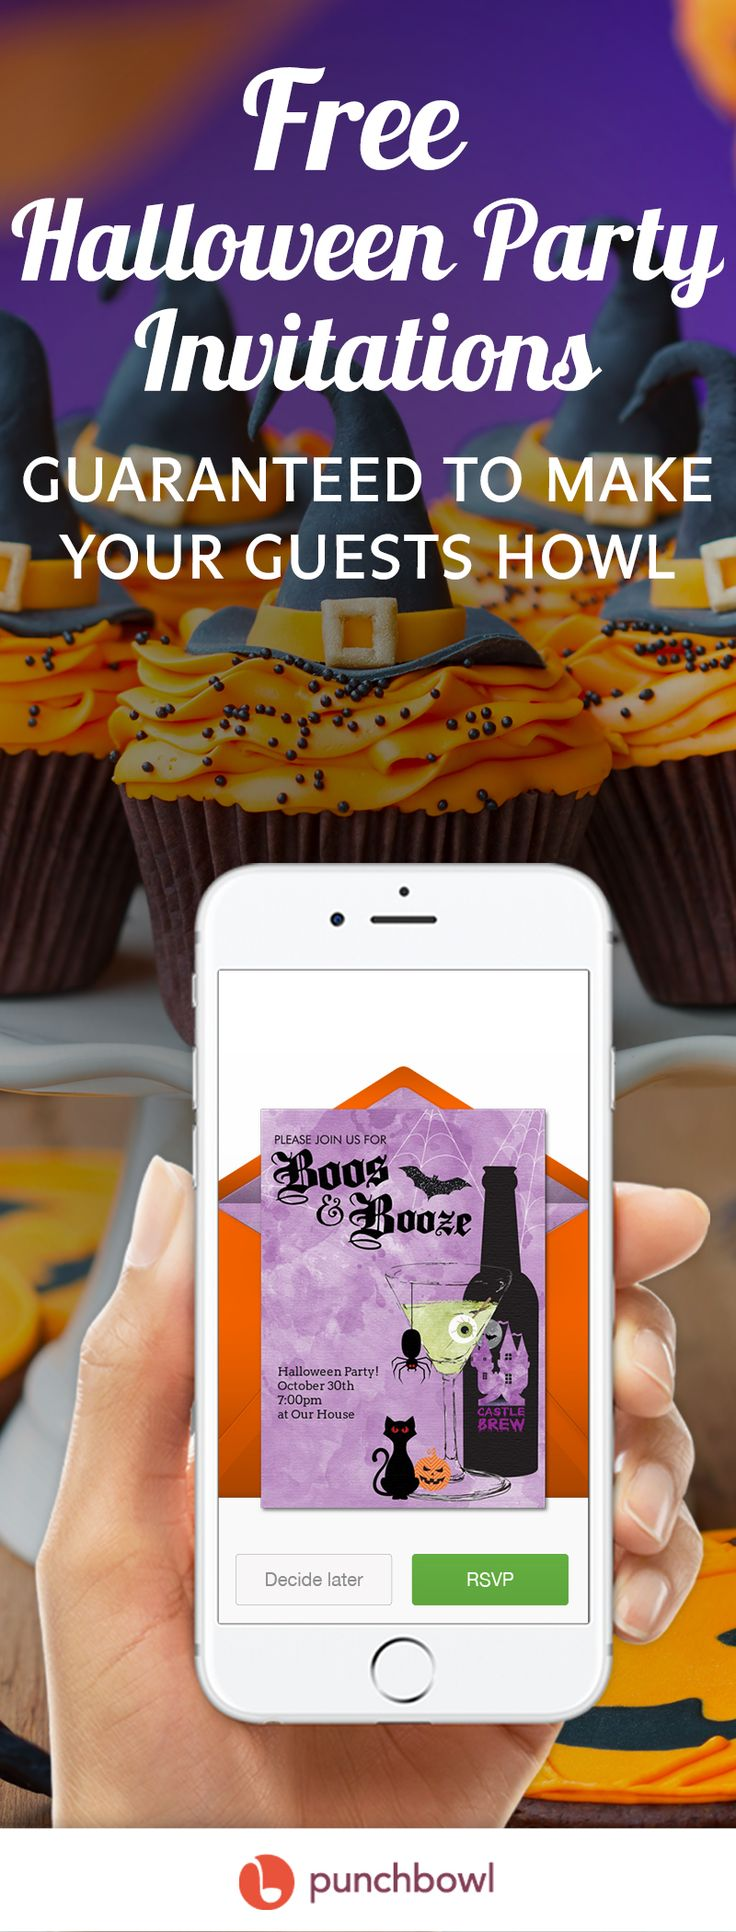 Paper invites are too formal, and emails are too casual. Get it just right with online invitations from Punchbowl. We've got everything you need for your Halloween party.        https://www.punchbowl.com/online-invitations/v/f/halloween?filters=true/?utm_source=Pinterest&utm_medium=112.7P